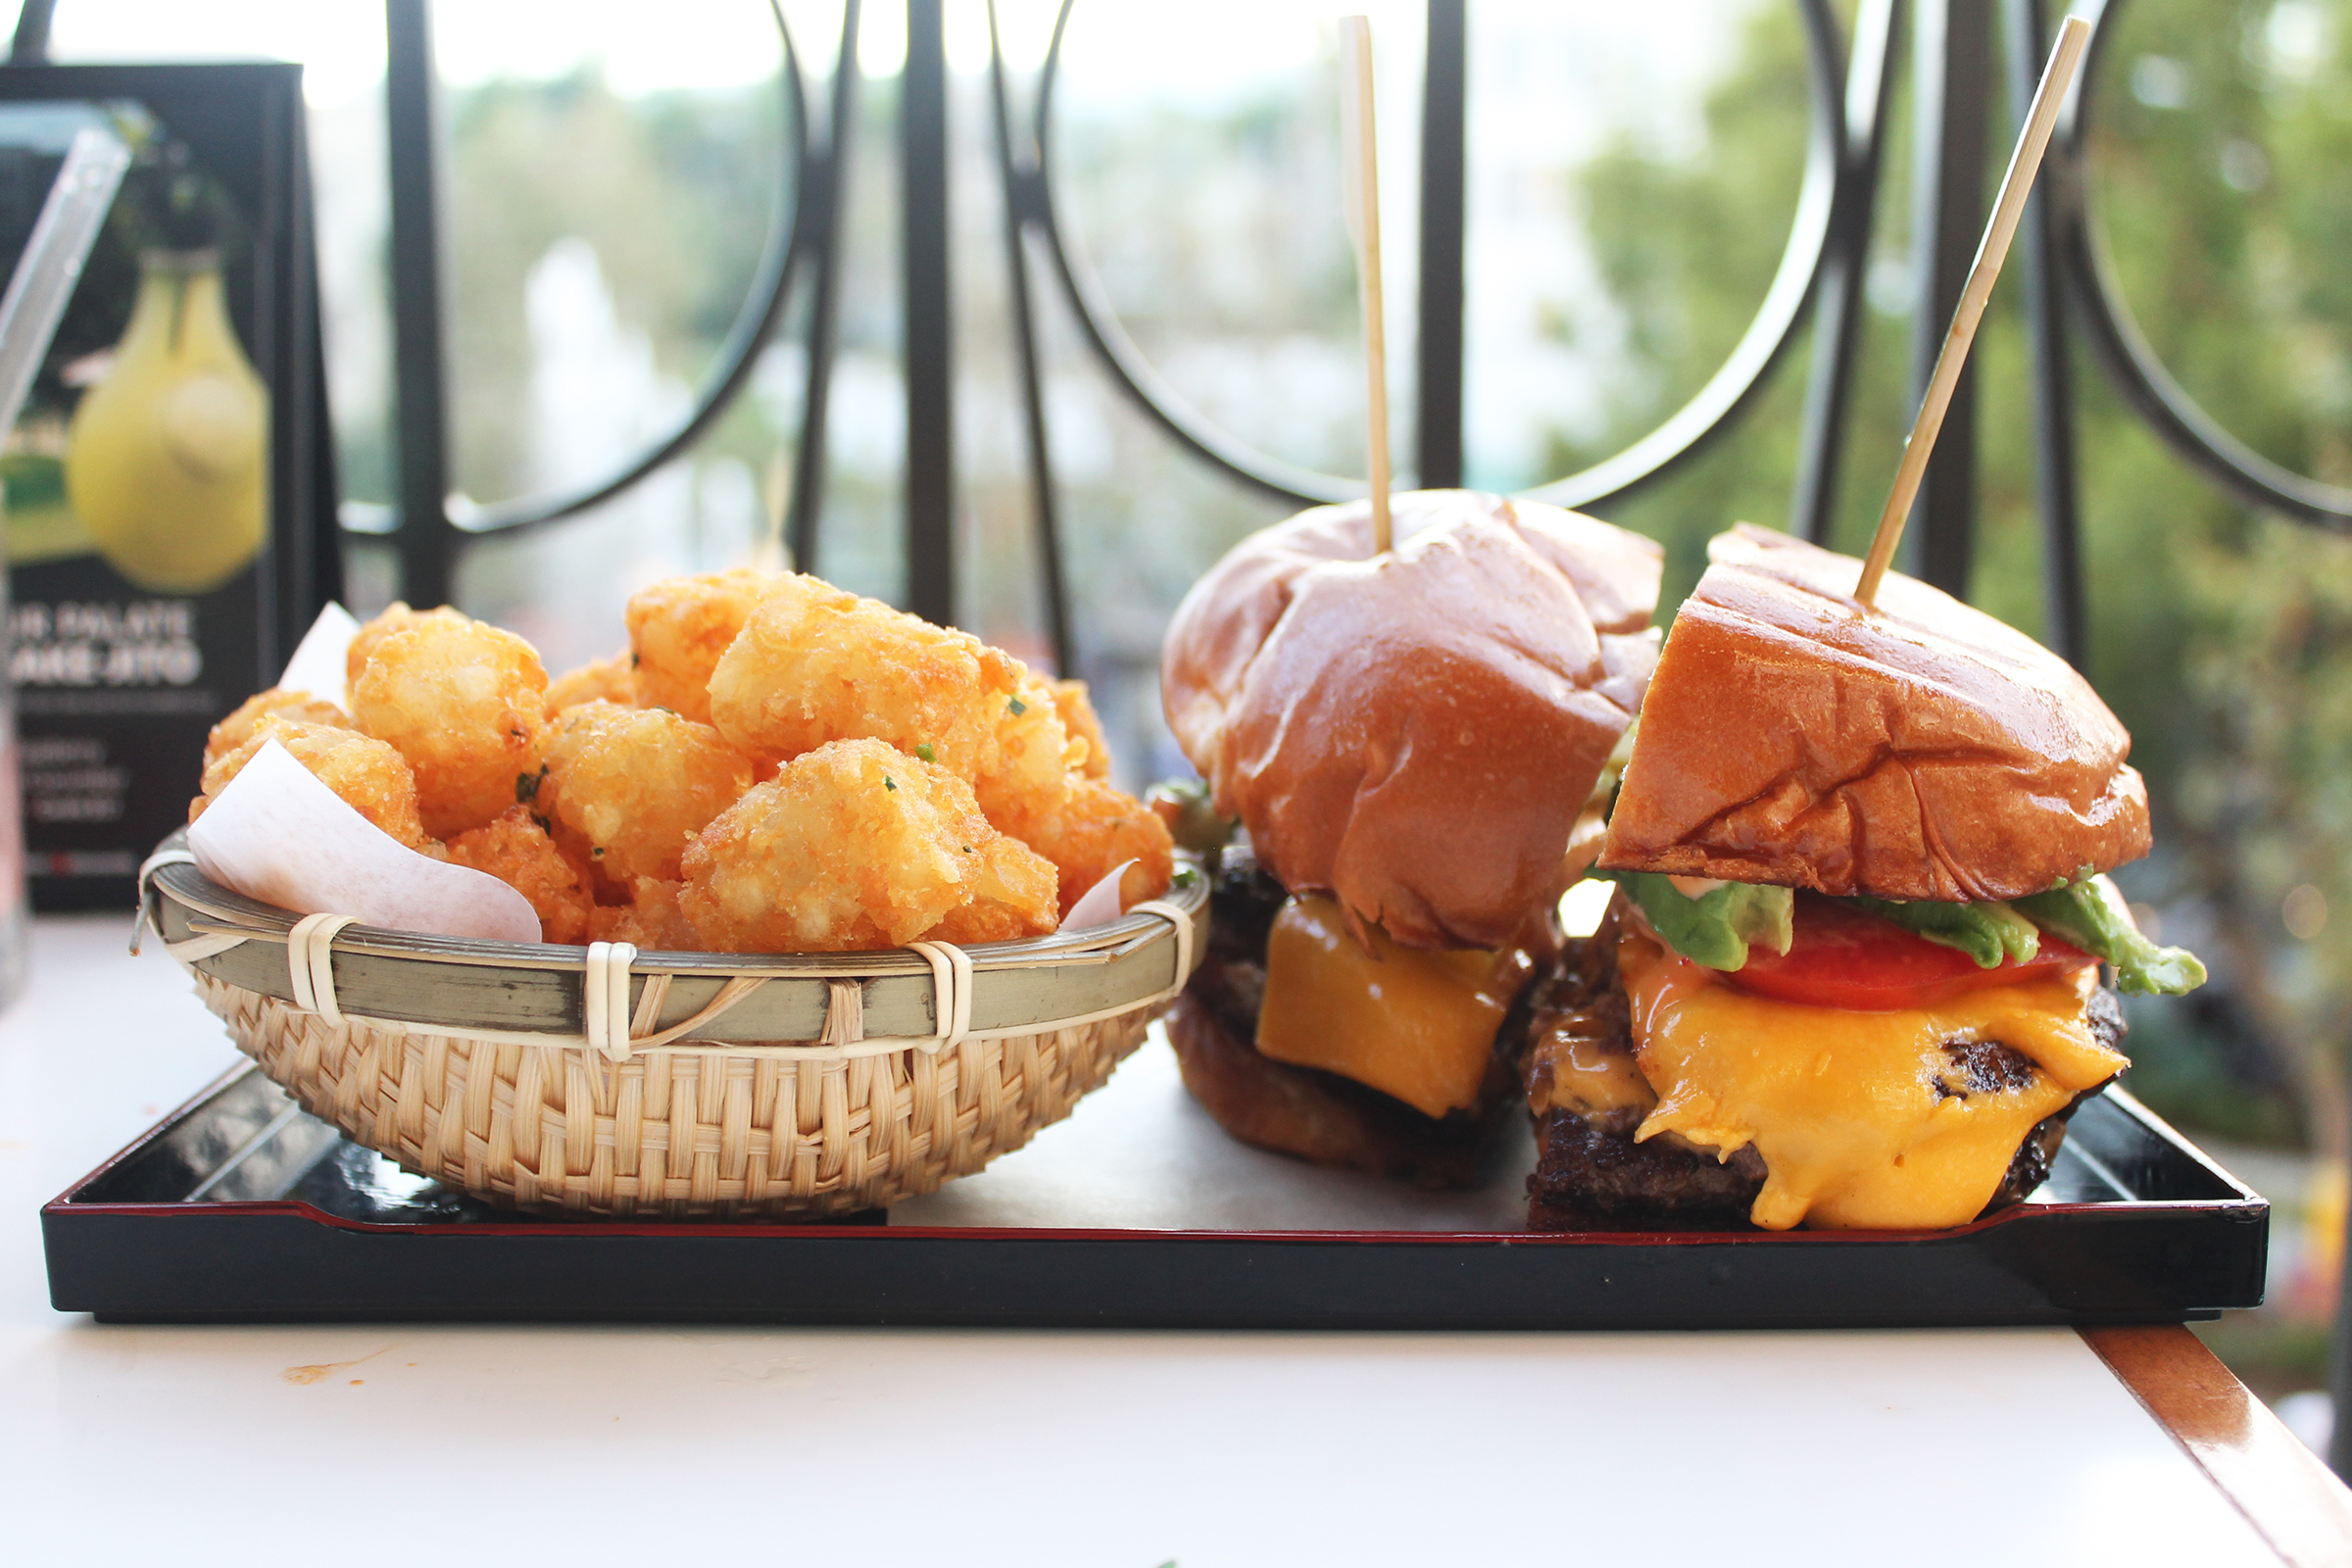 Burger:  1/2 pound with Chef's Spicy Creamy Sauce, Caramelized Onion, Tomato, American Cheese, and Tots